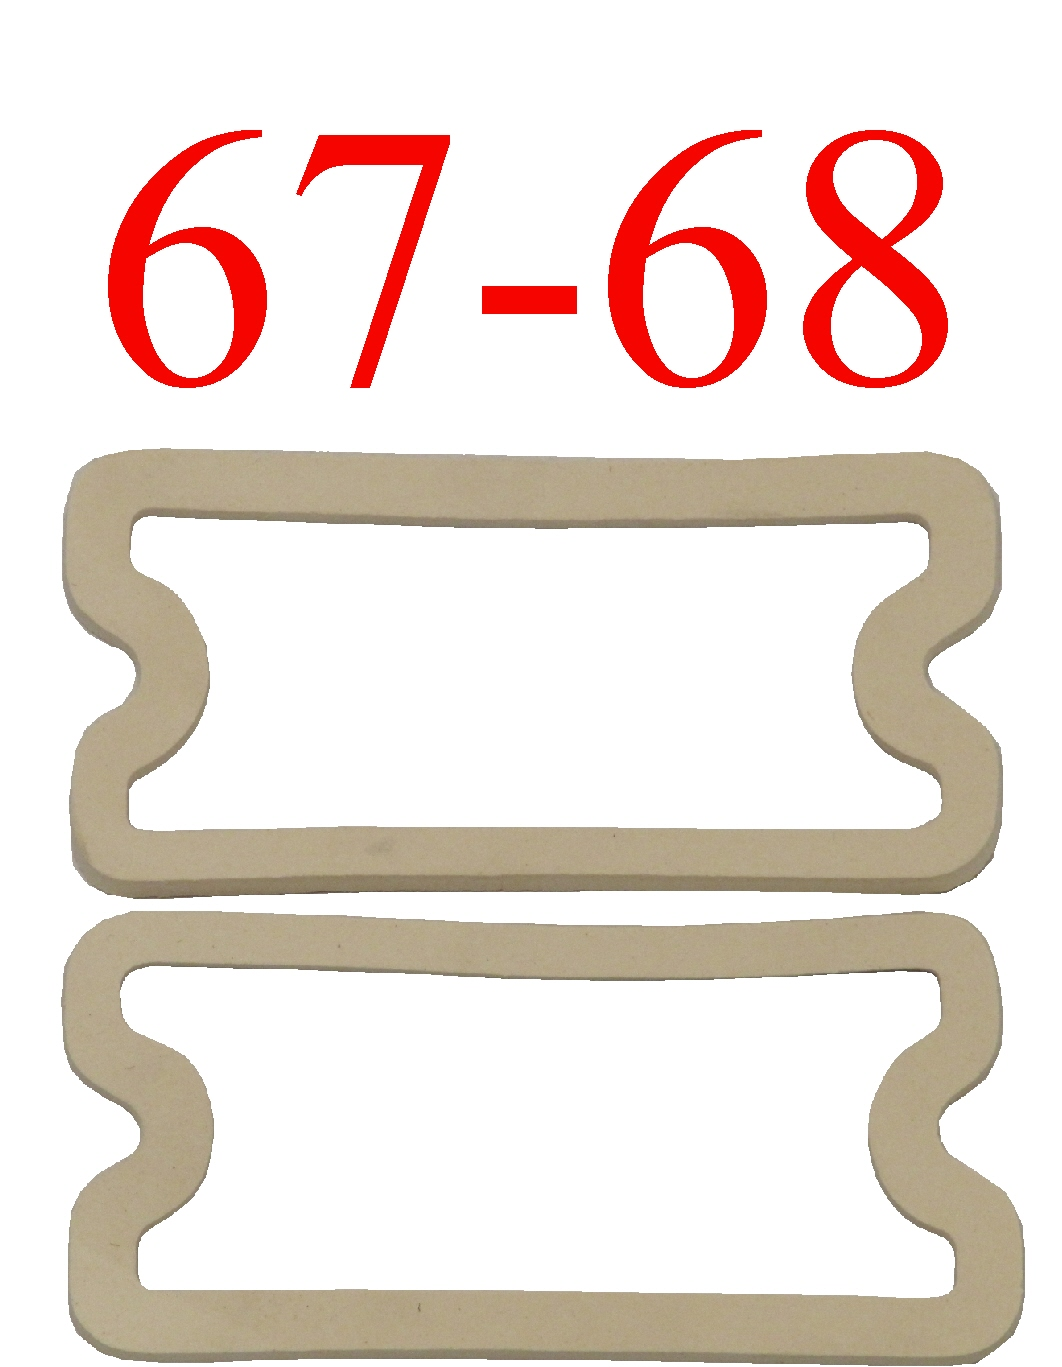 67-68 Chevy Parking Light Gasket Set L&R